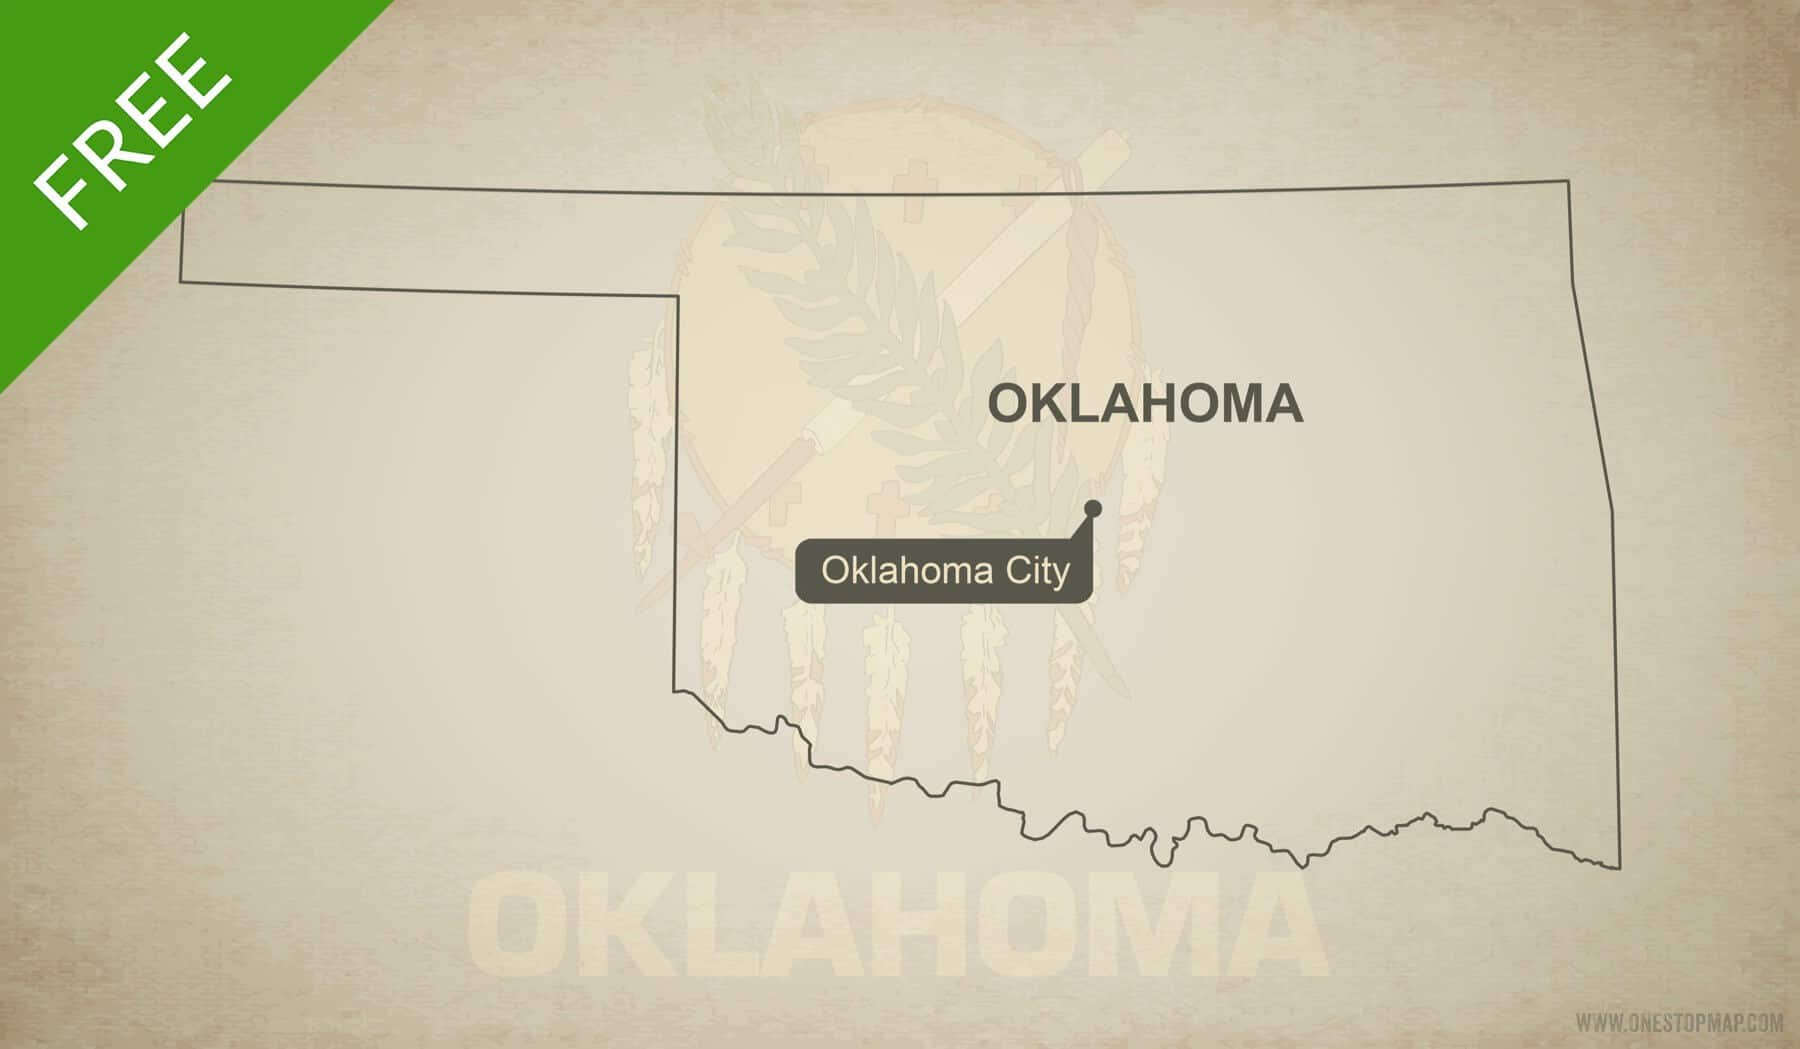 Free vector map of Oklahoma outline | One Stop Map